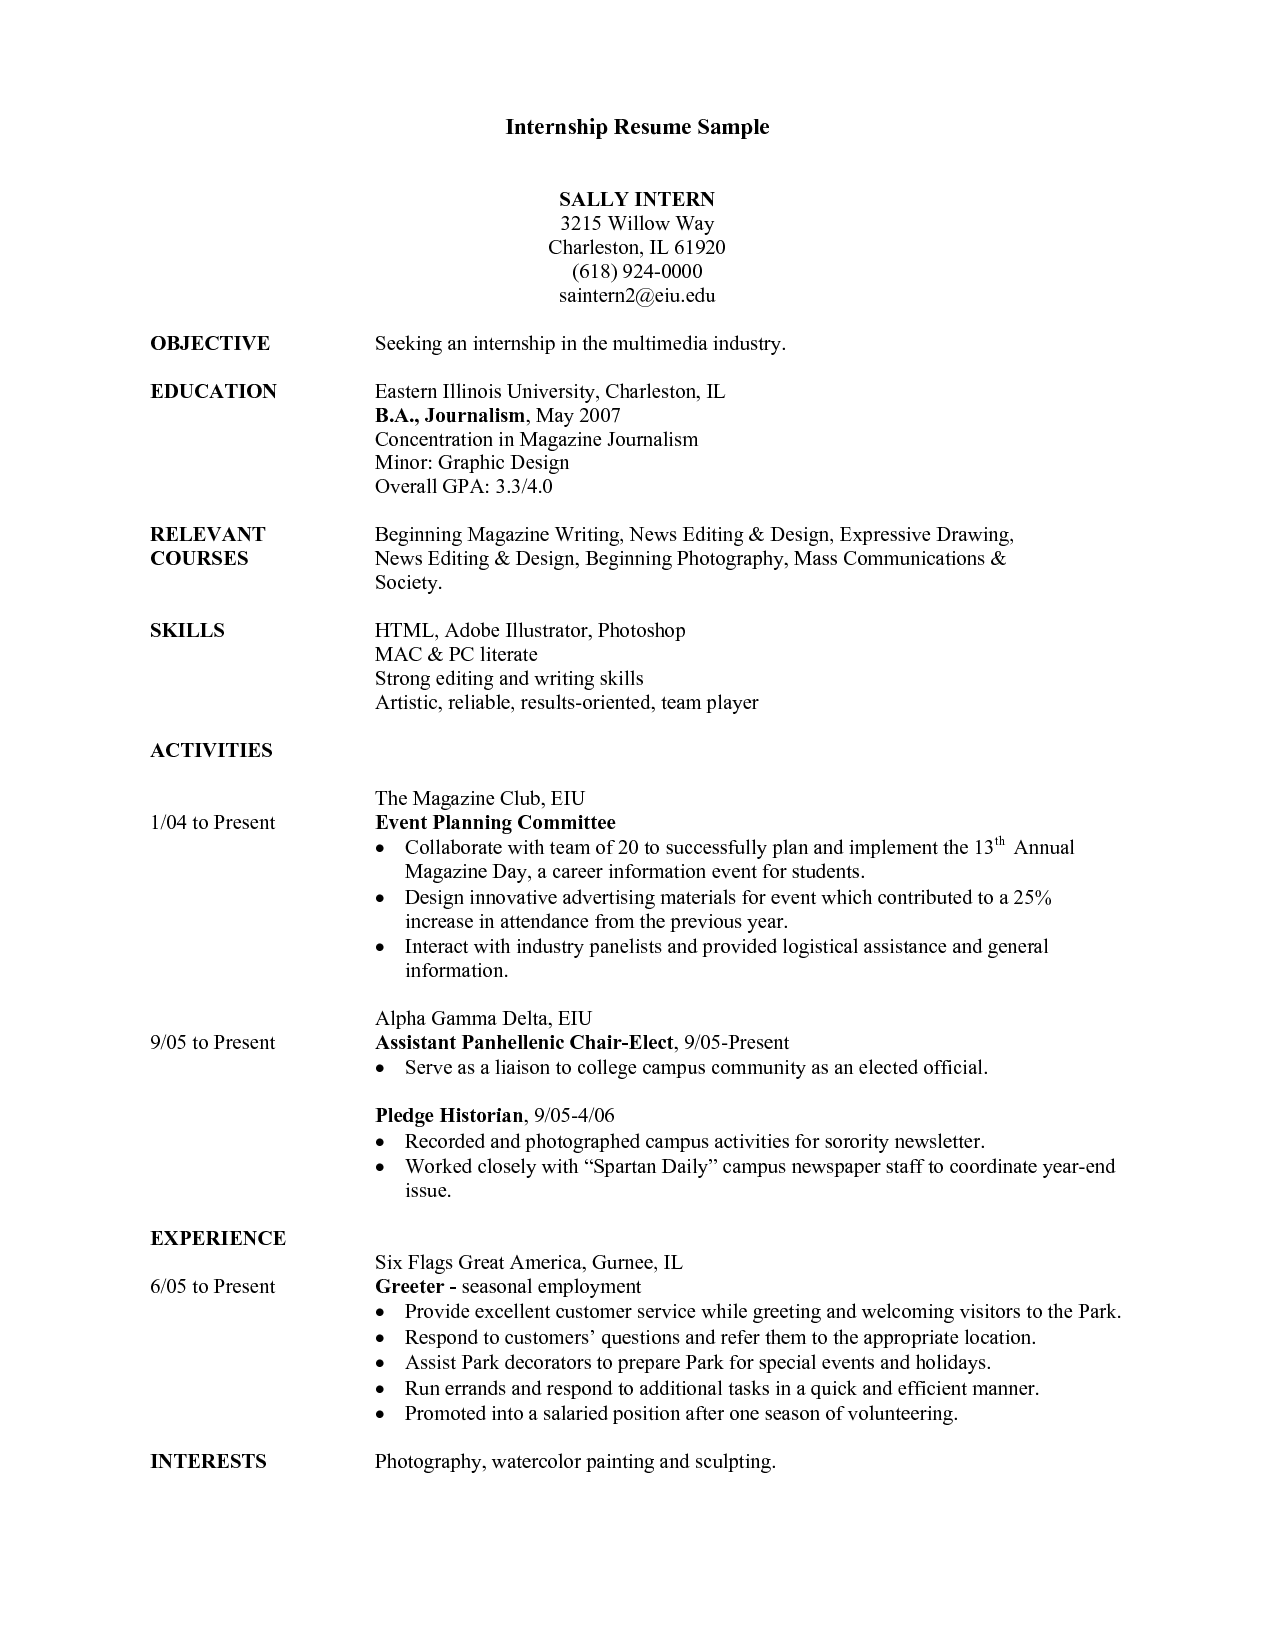 College Resume Template Amazing Resume Template College Intern Resume Template Builder  Httpwww